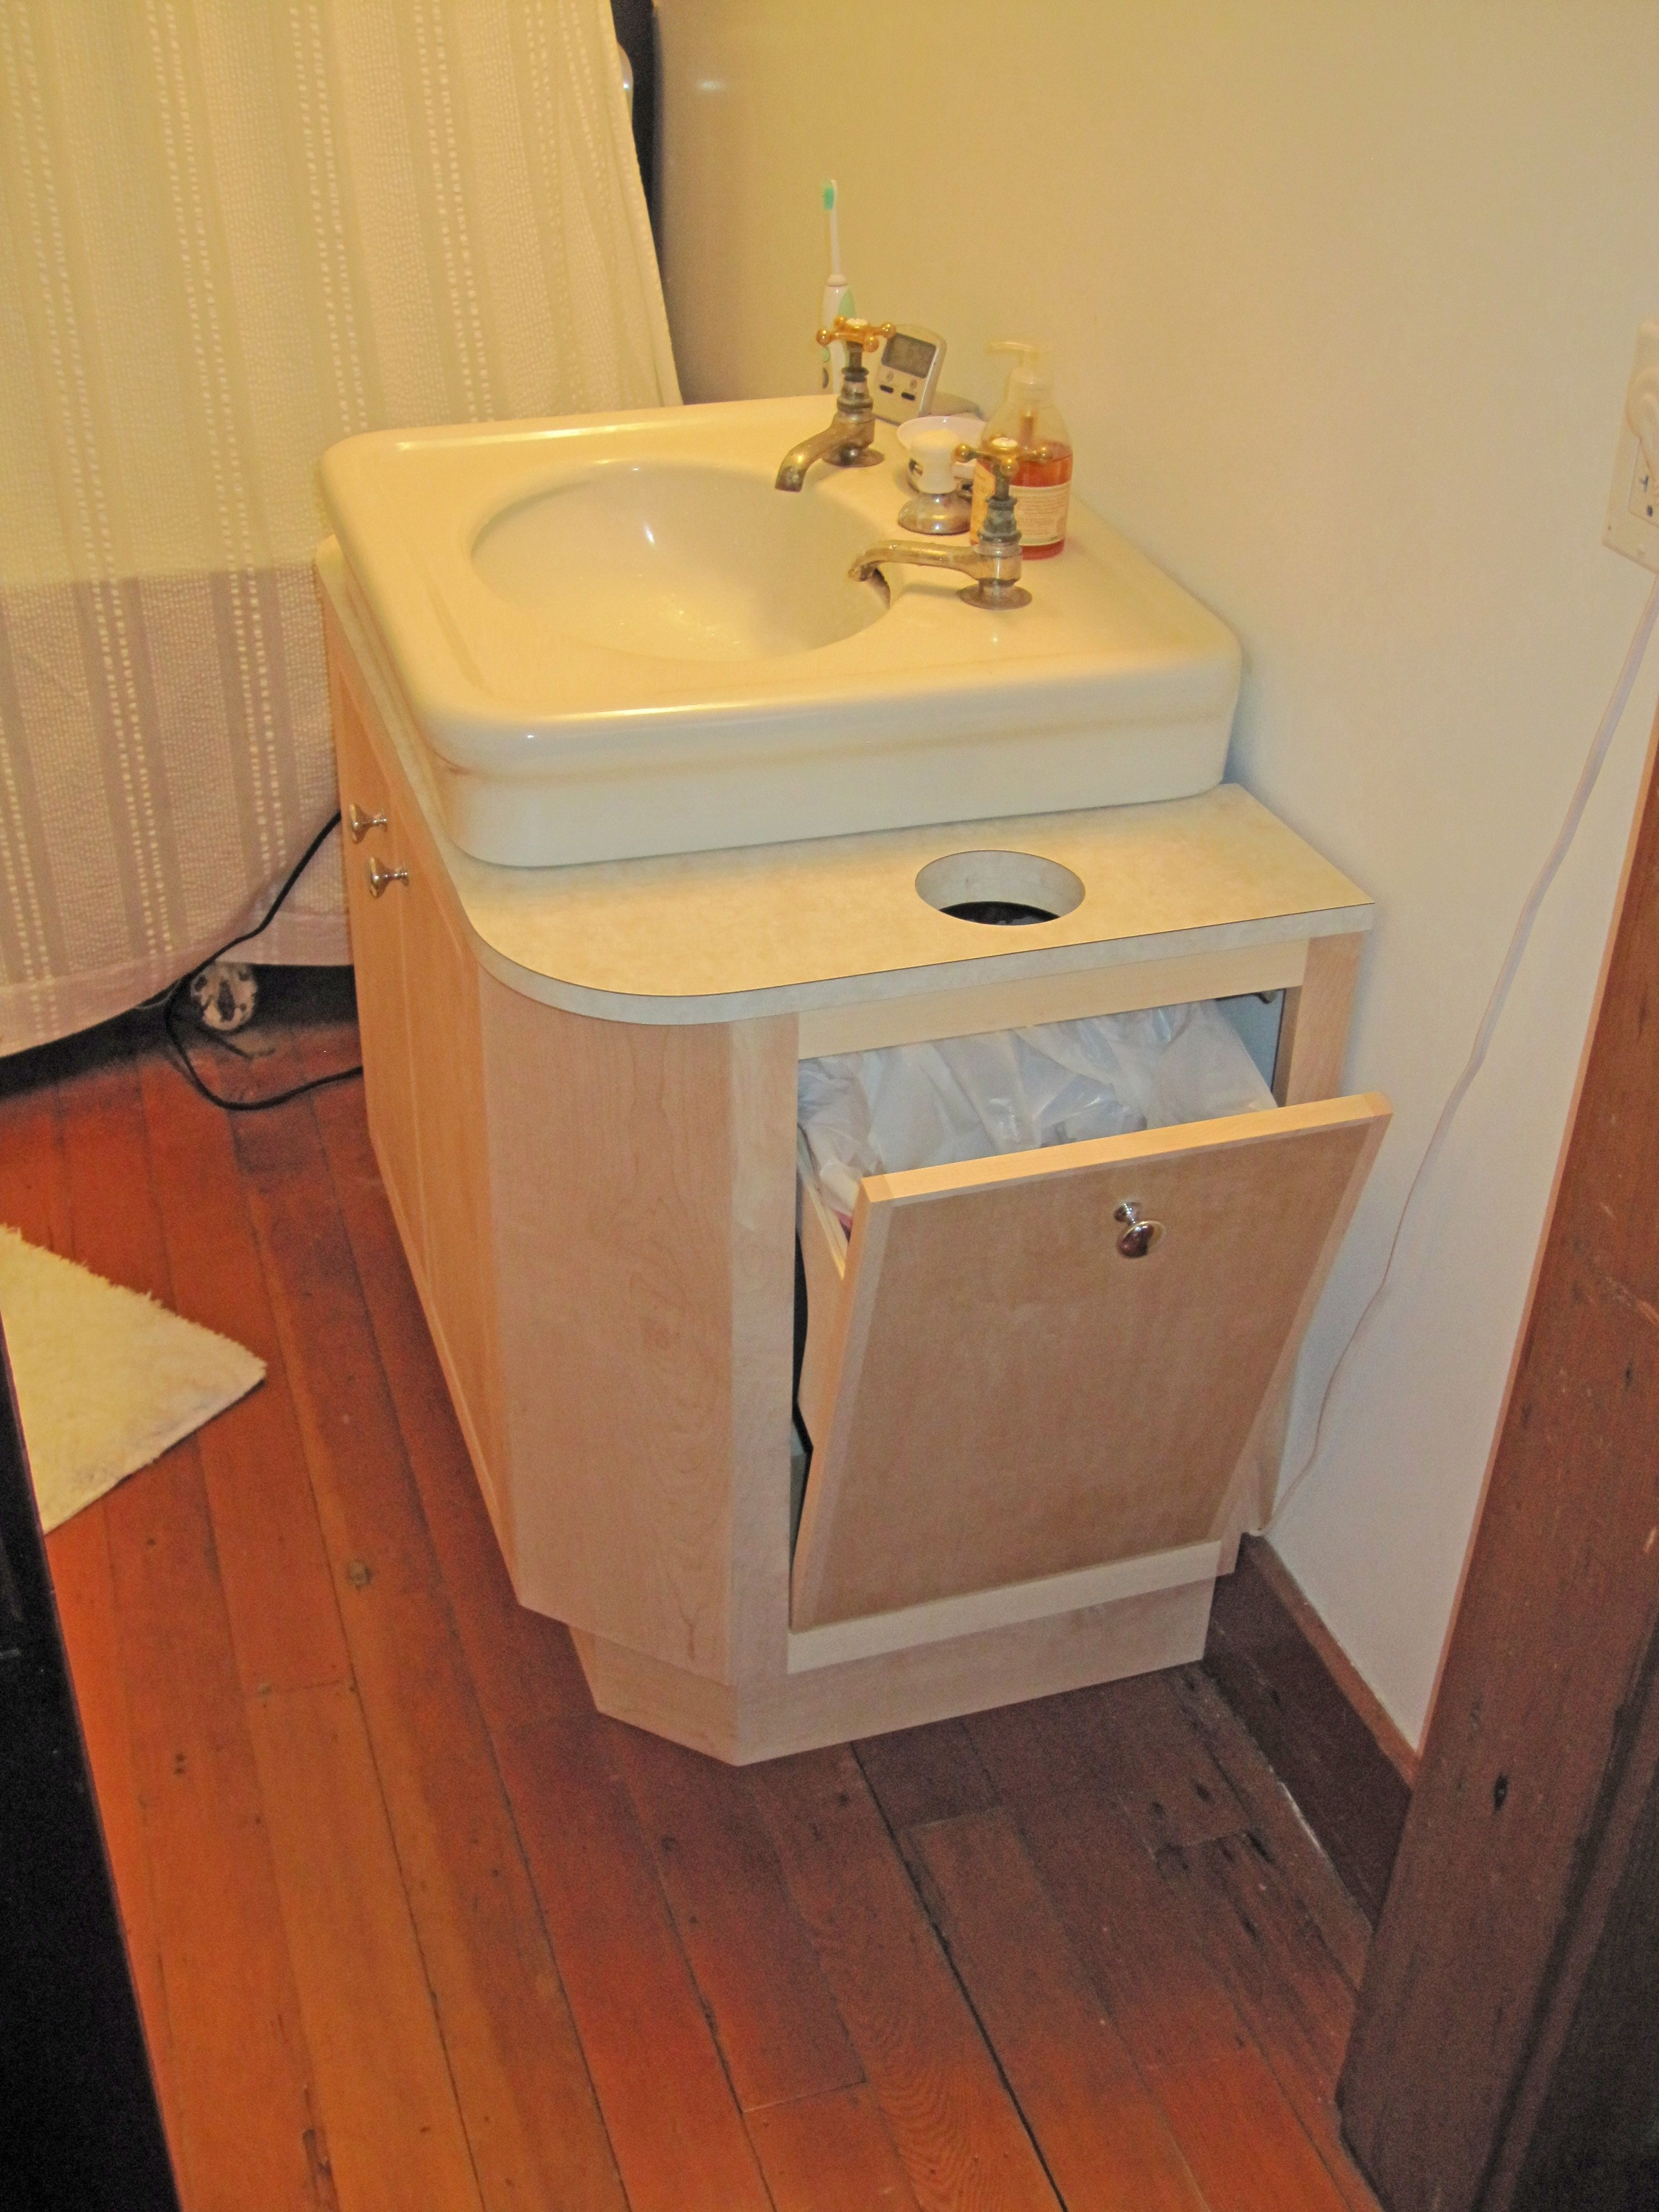 Bathroom Cabinet Around Pedestal Sink The Is A Very Important Aspect Of Property Toilet Sinks Are Emplo